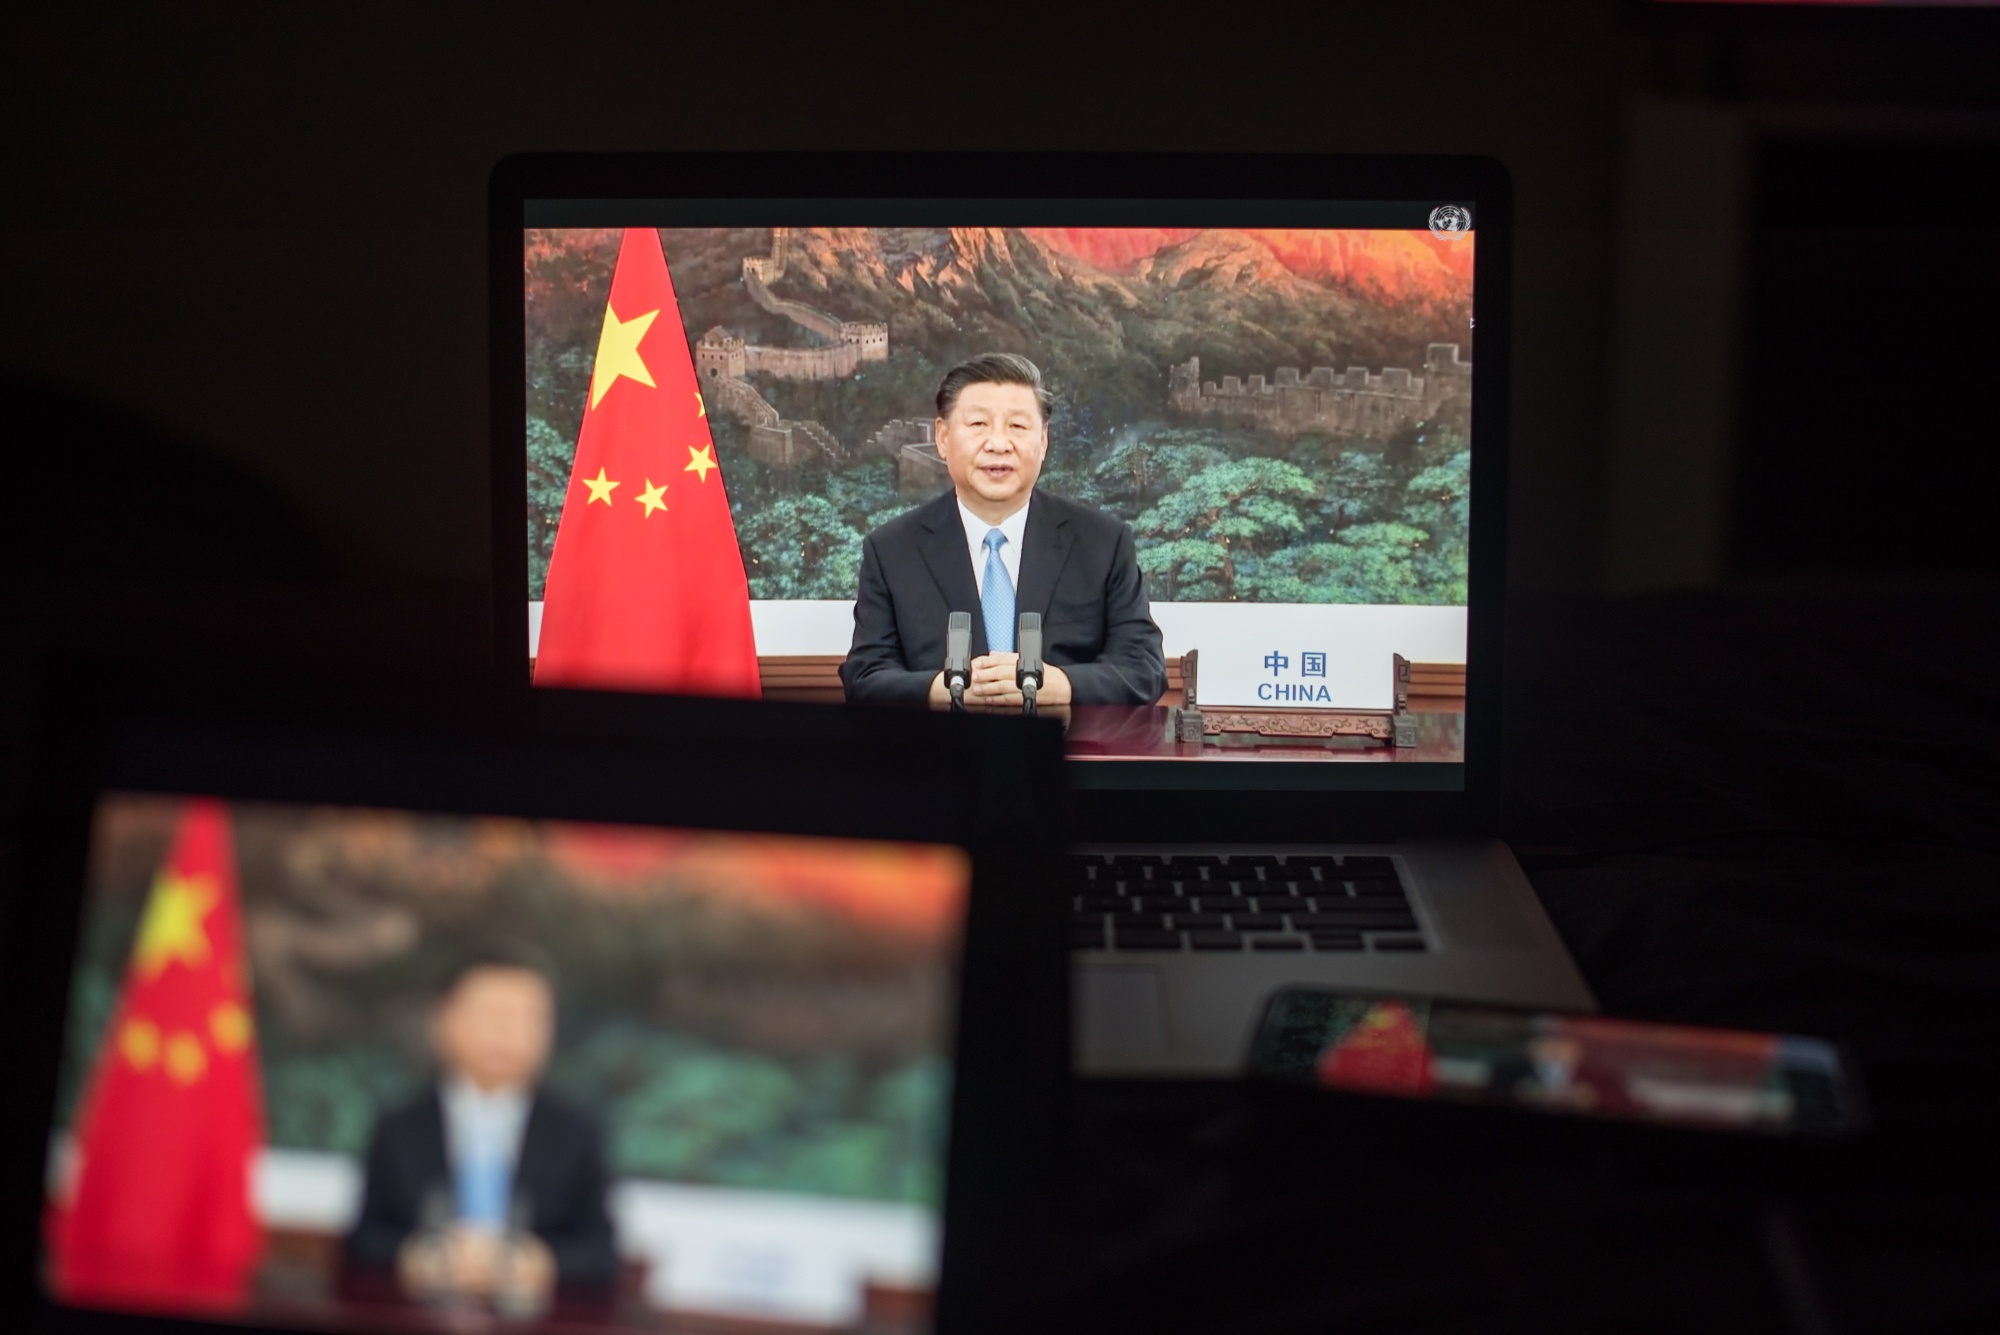 Xi Jinping speaks virtually during the United Nations General Assembly on Sept. 22. 2020.